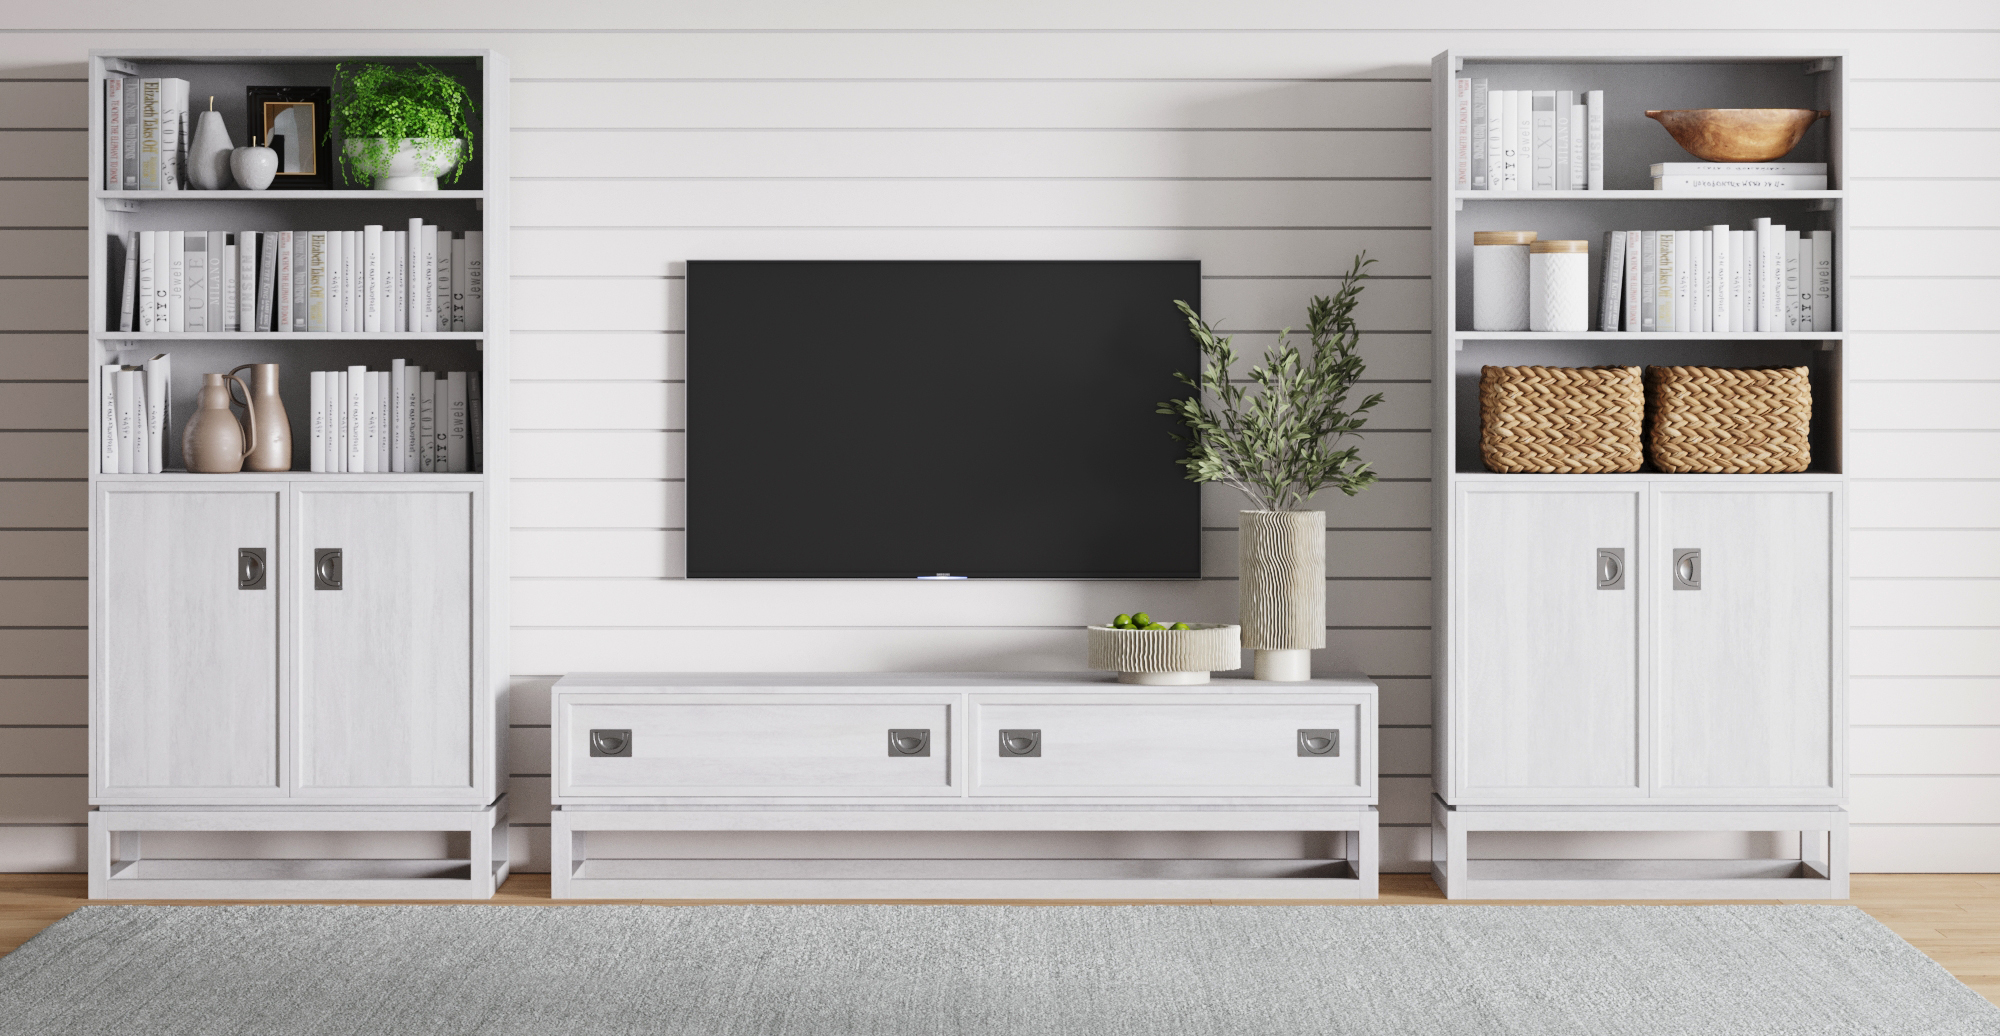 Brosa Monterey Hamptons Style Large Entertainment Unit styled in Hamptons living room